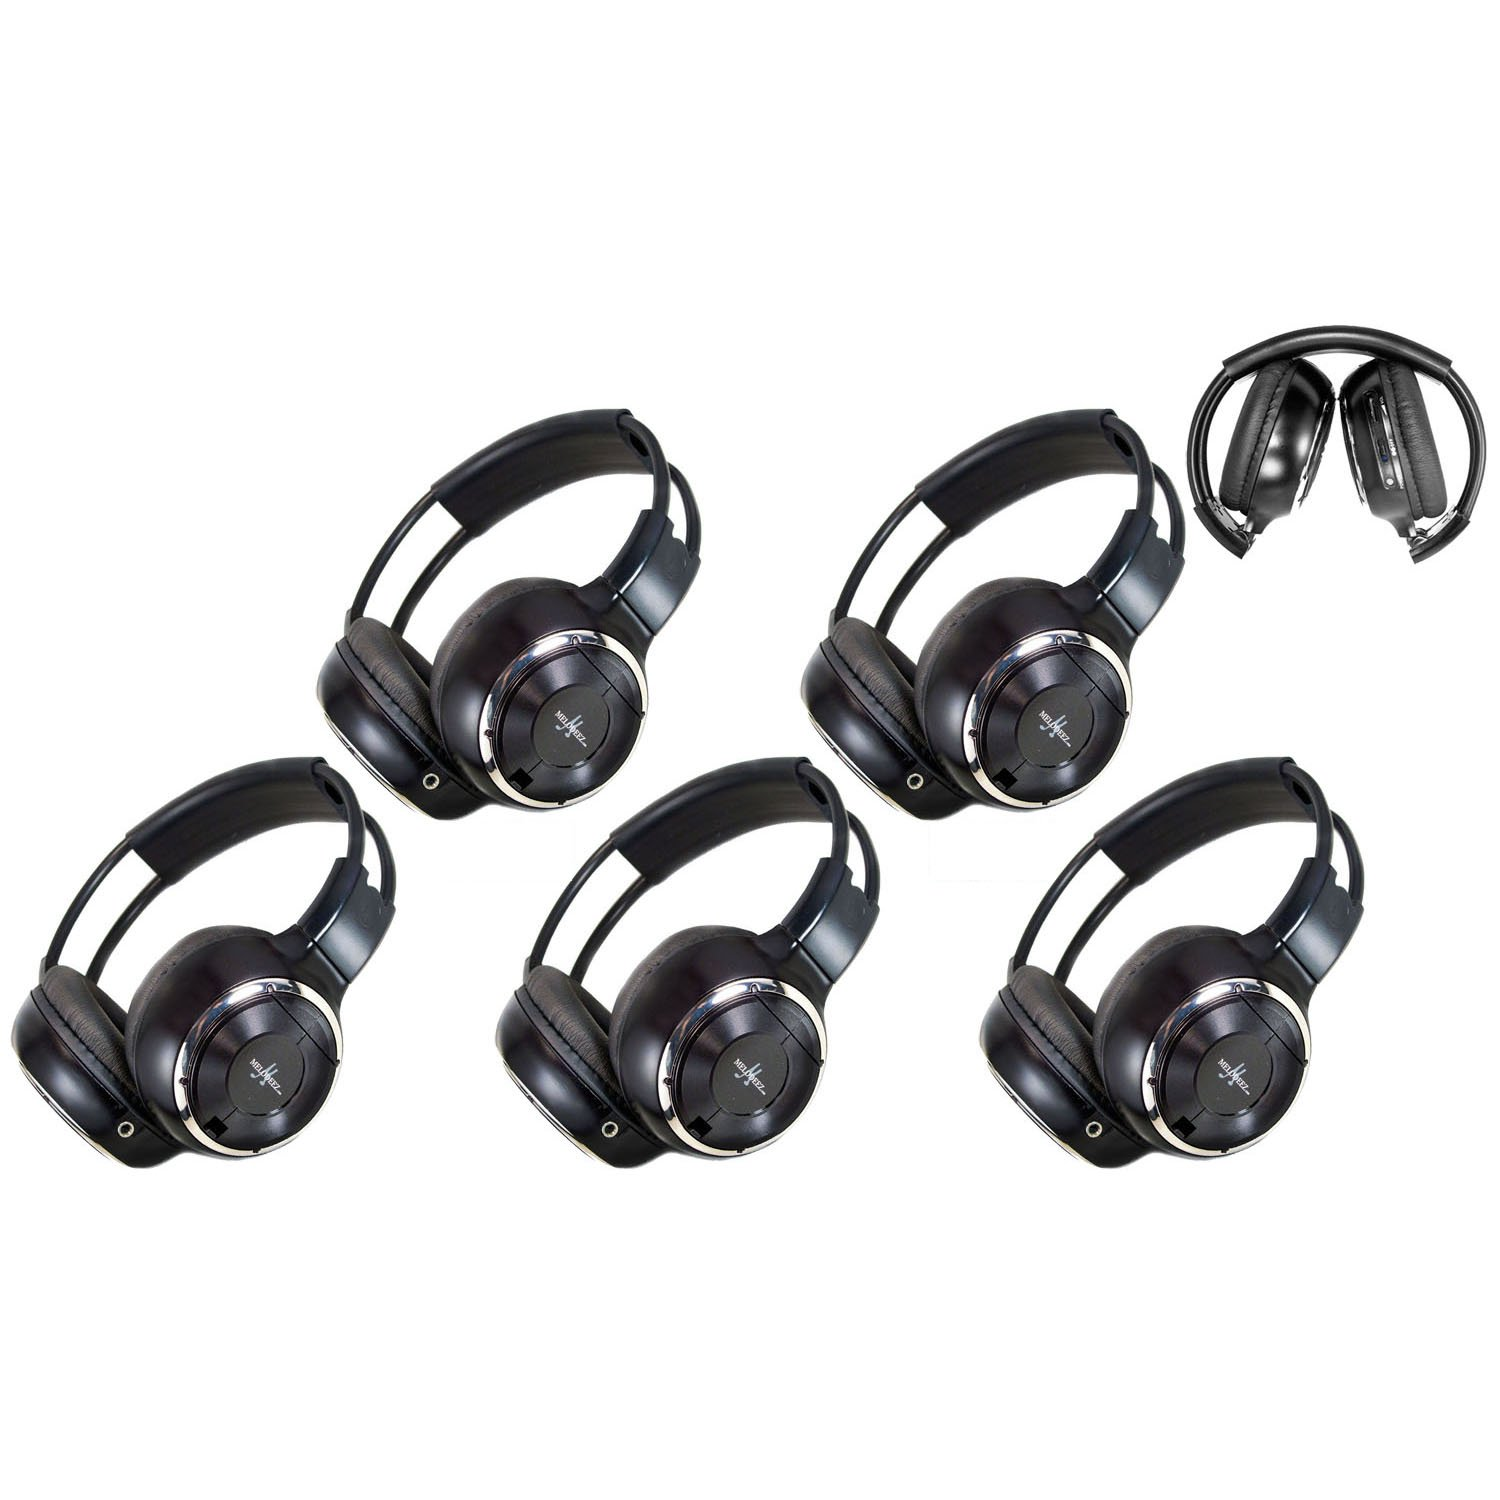 5 Pack of Two Channel Fold Adjustable Universal Rear Entertainment System Infrared Headphones 5 Additional 48'' 3.5mm Auxiliary Cords Wireless IR DVD Player Head Phones Car TV Video Audio Listening by Key Audio